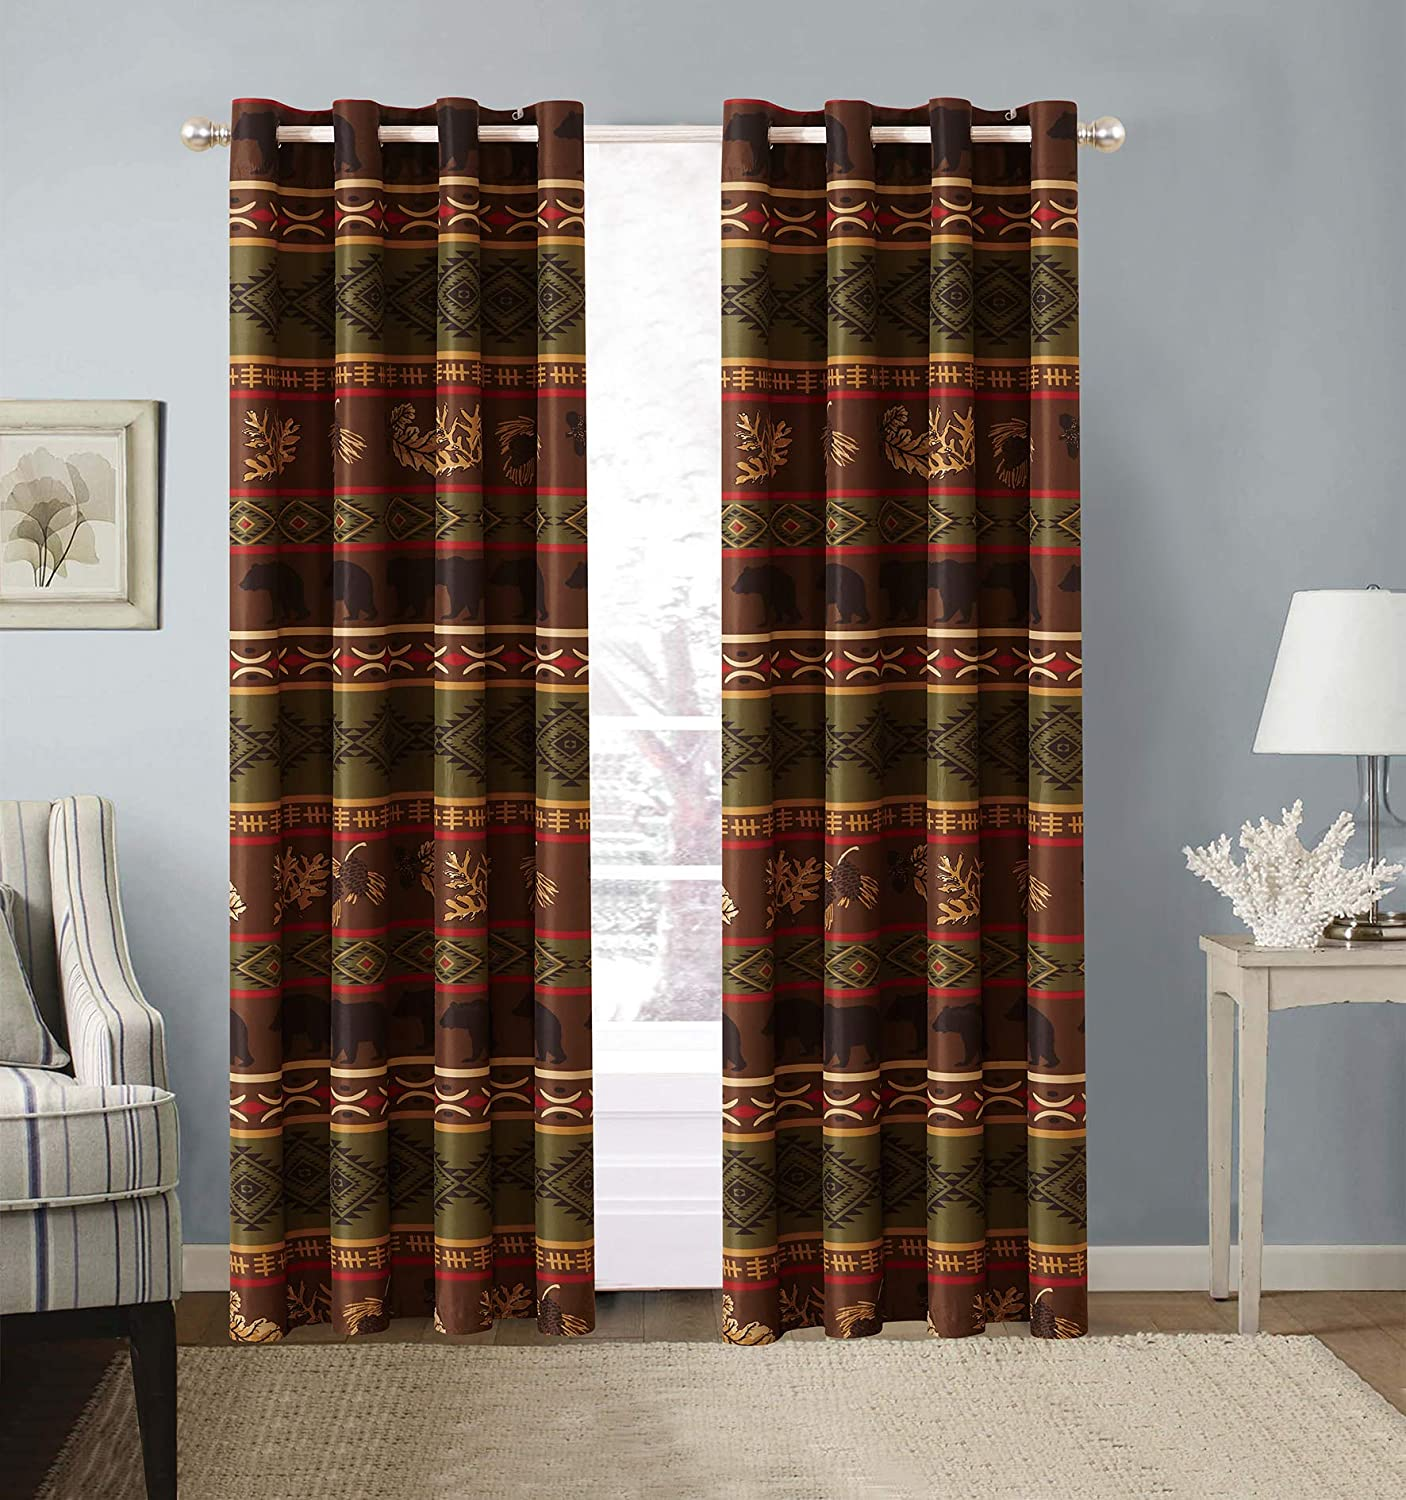 Rustic Western Grizzly Bear Grommet Curtain Set with Southwest Native Indian Tribal Patterns in Brown and Green – Microfiber Curtain Set Bear